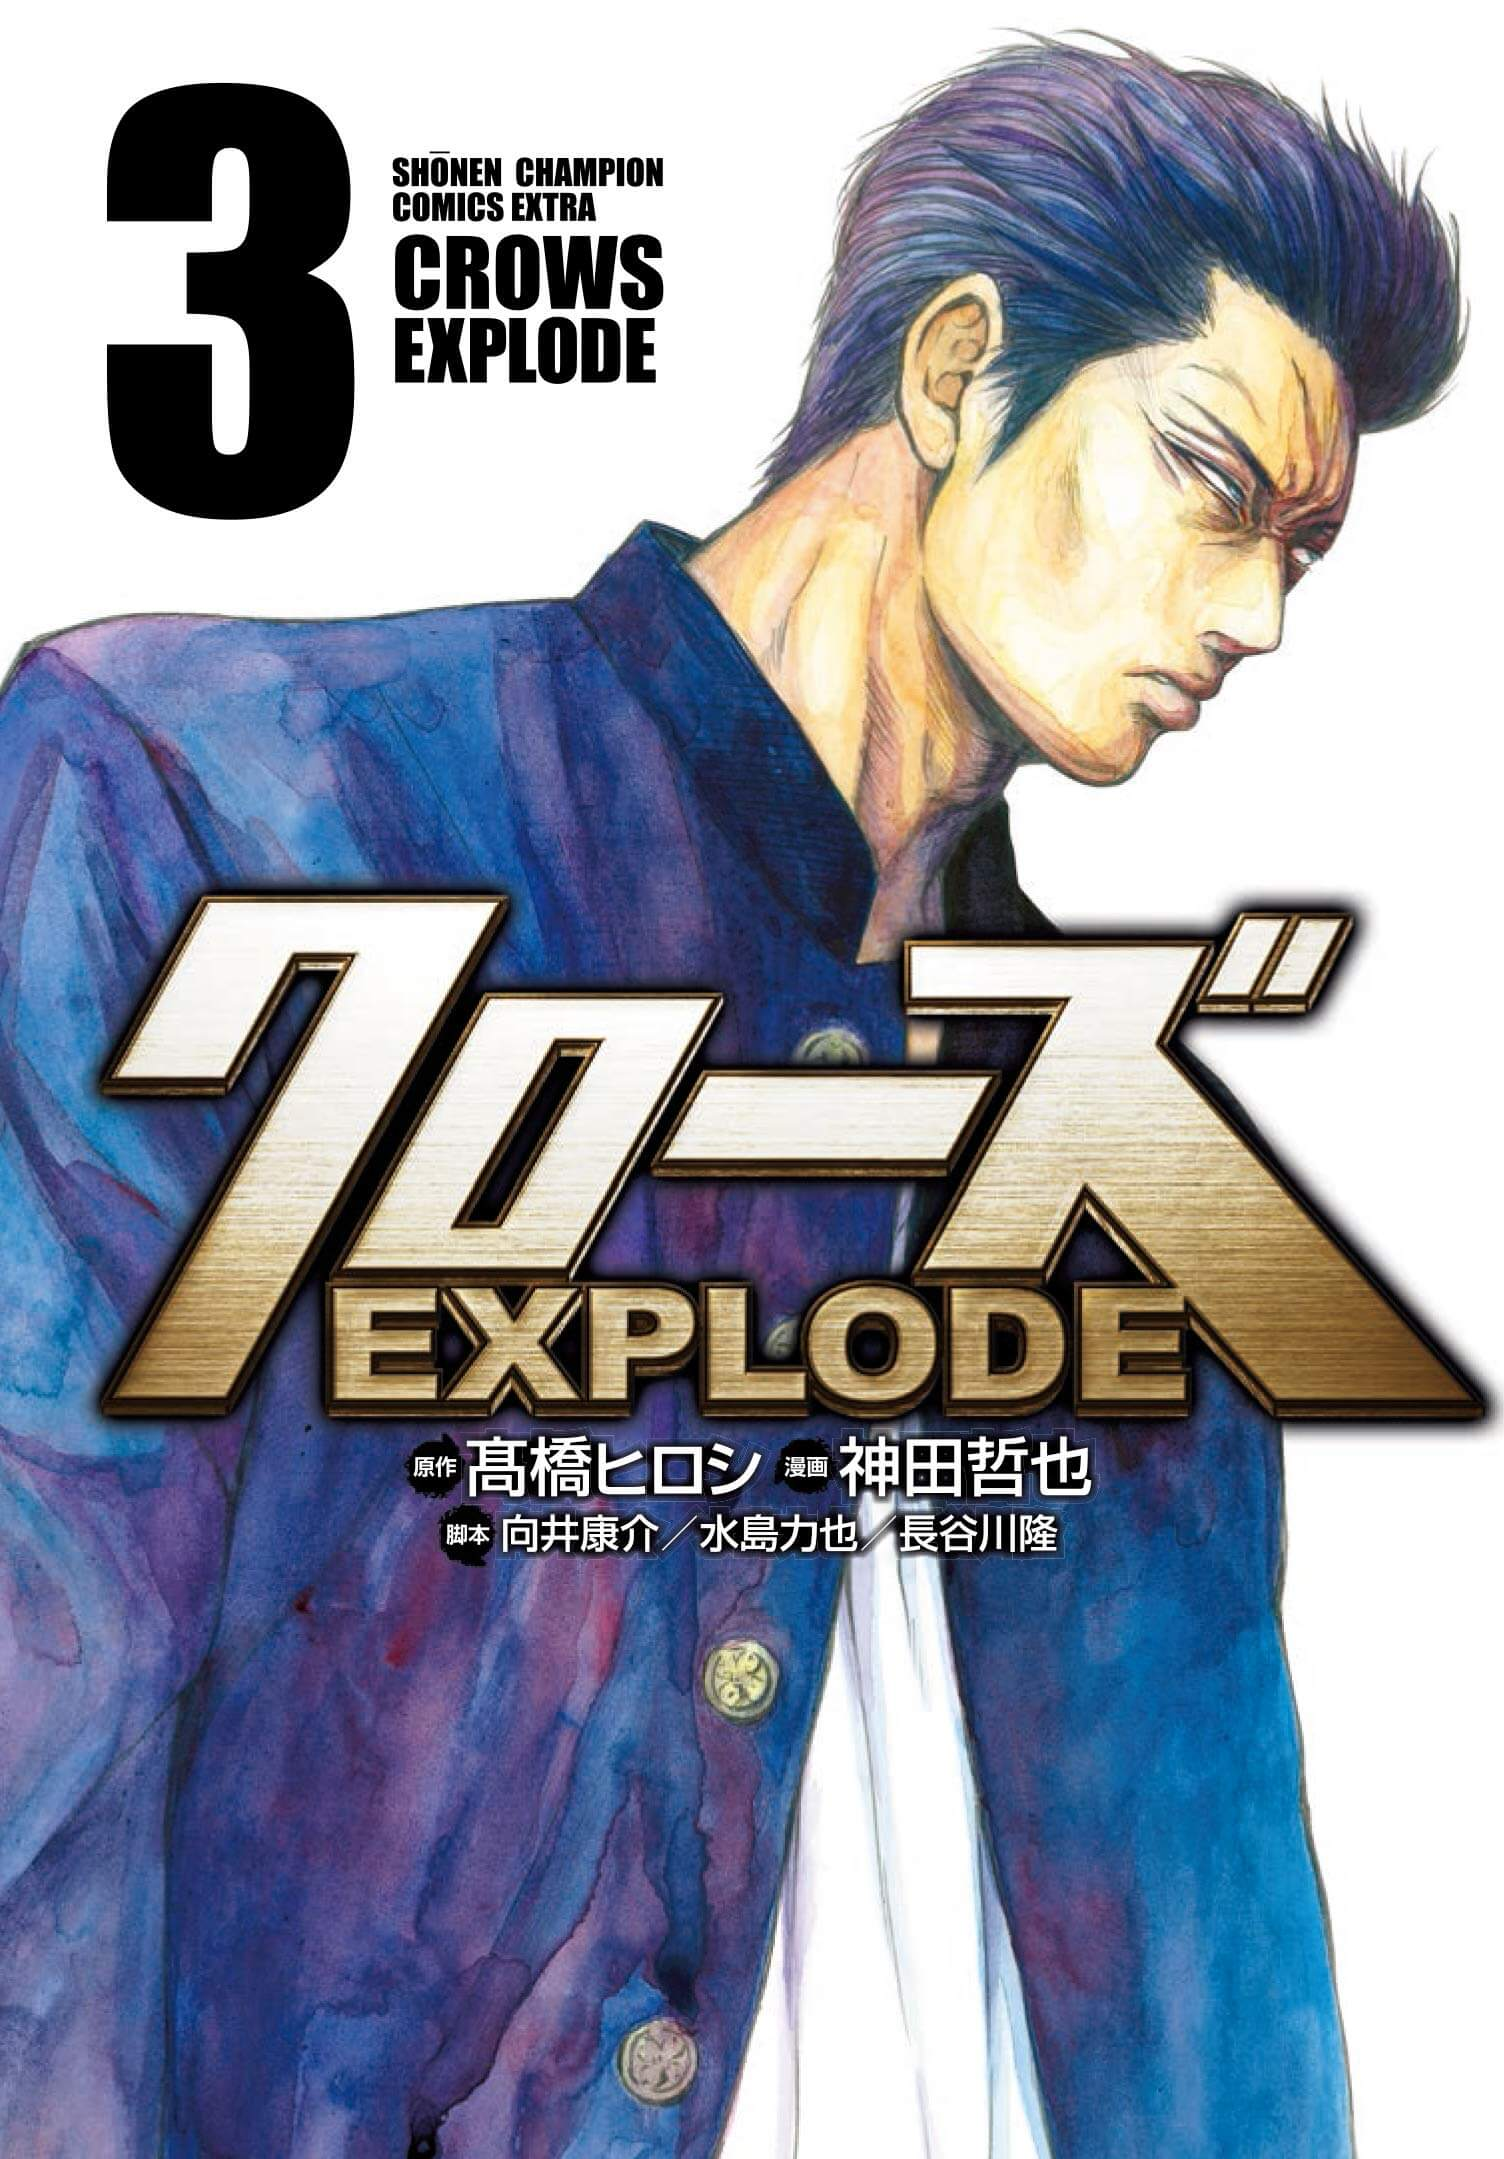 Crows Explode Manga Volume 03 Couverture www.FuryoGang.com